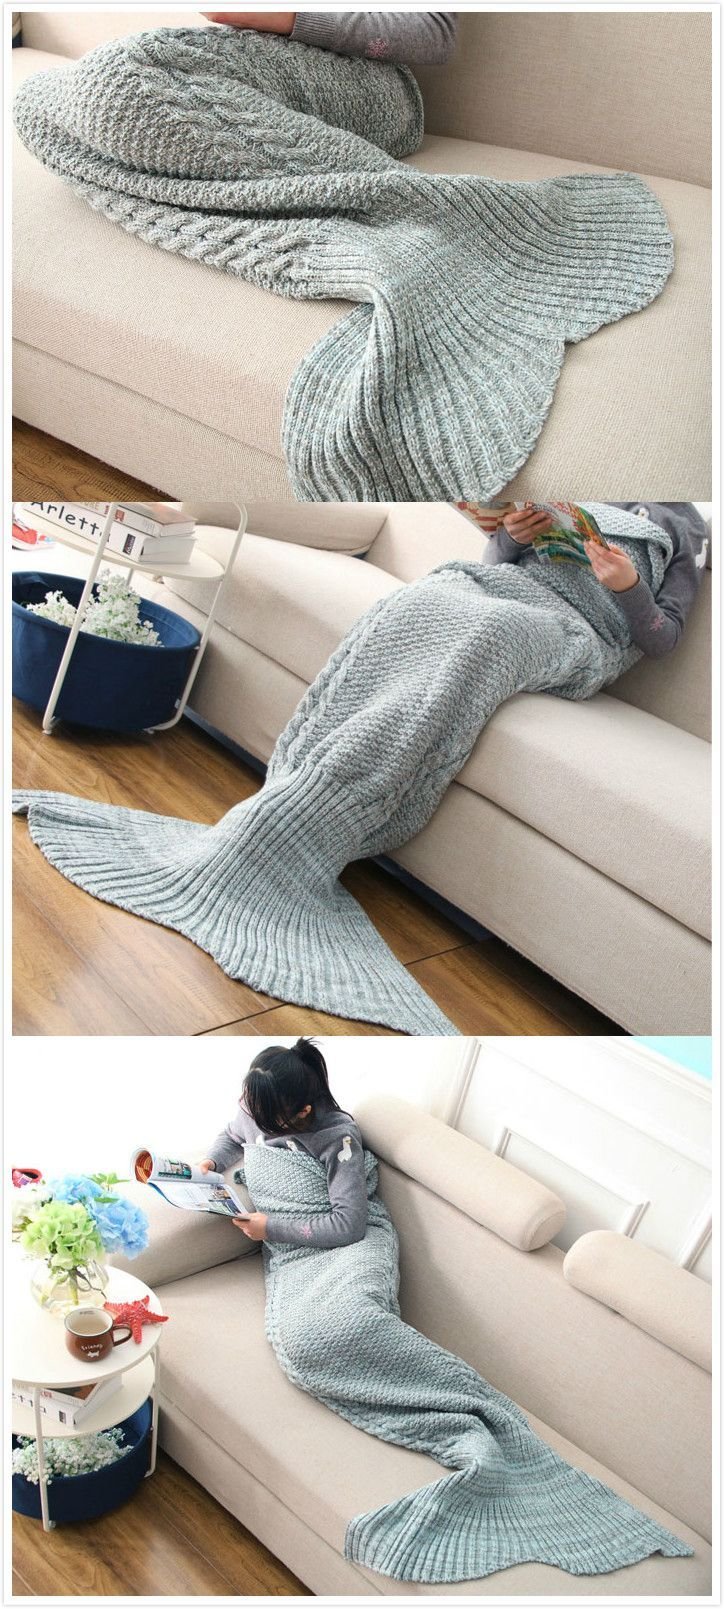 Mermaid Tail Blanket for me !It has 8% off now ,the coupon code is :Happyday11  #discount #mermaid #crafty